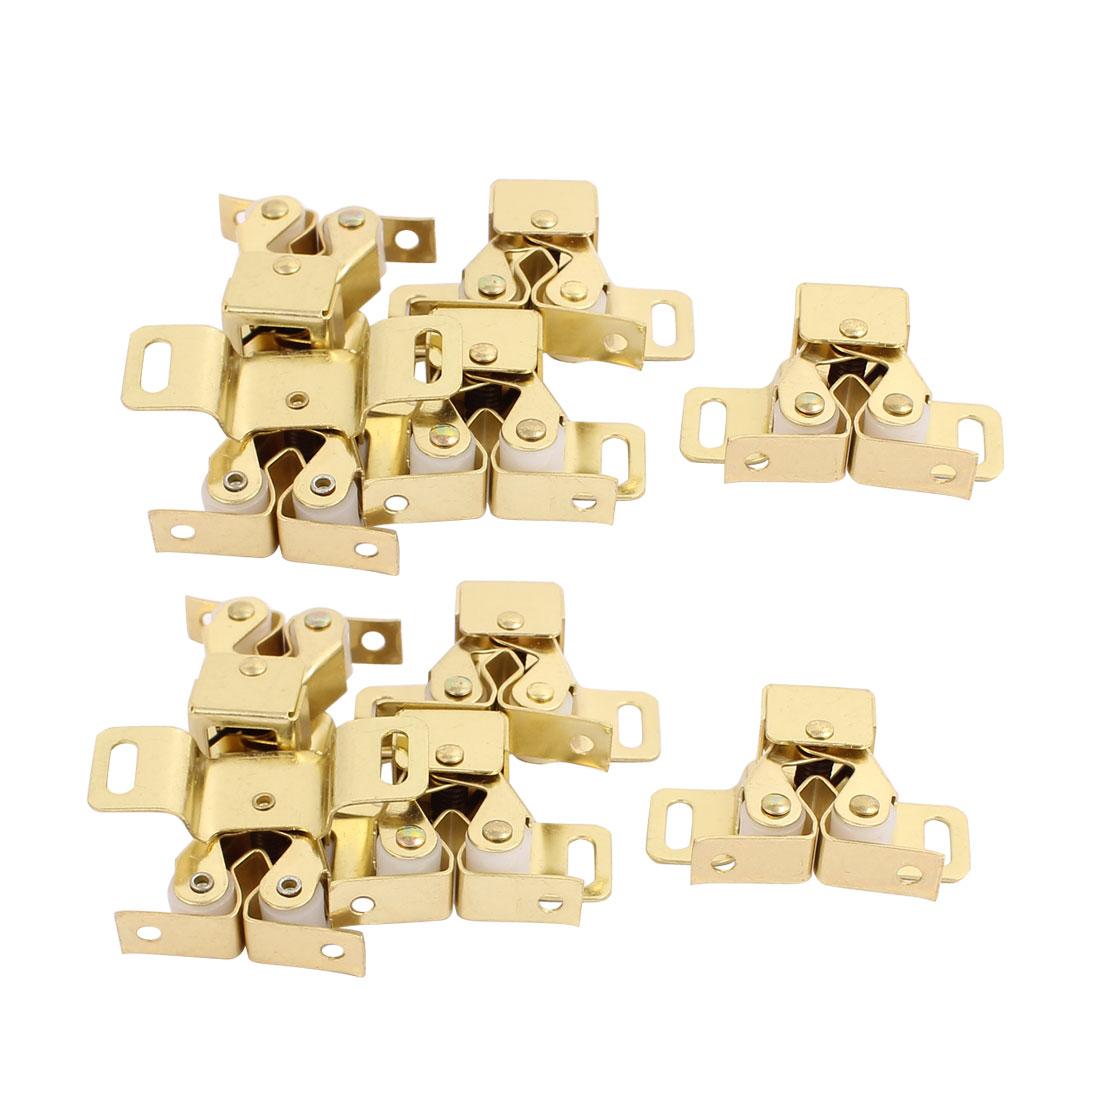 Cupboard Closet Cabinet Door Double Ball Roller Catch Latch 48 x 30 x 20mm Gold Tone 10pcs